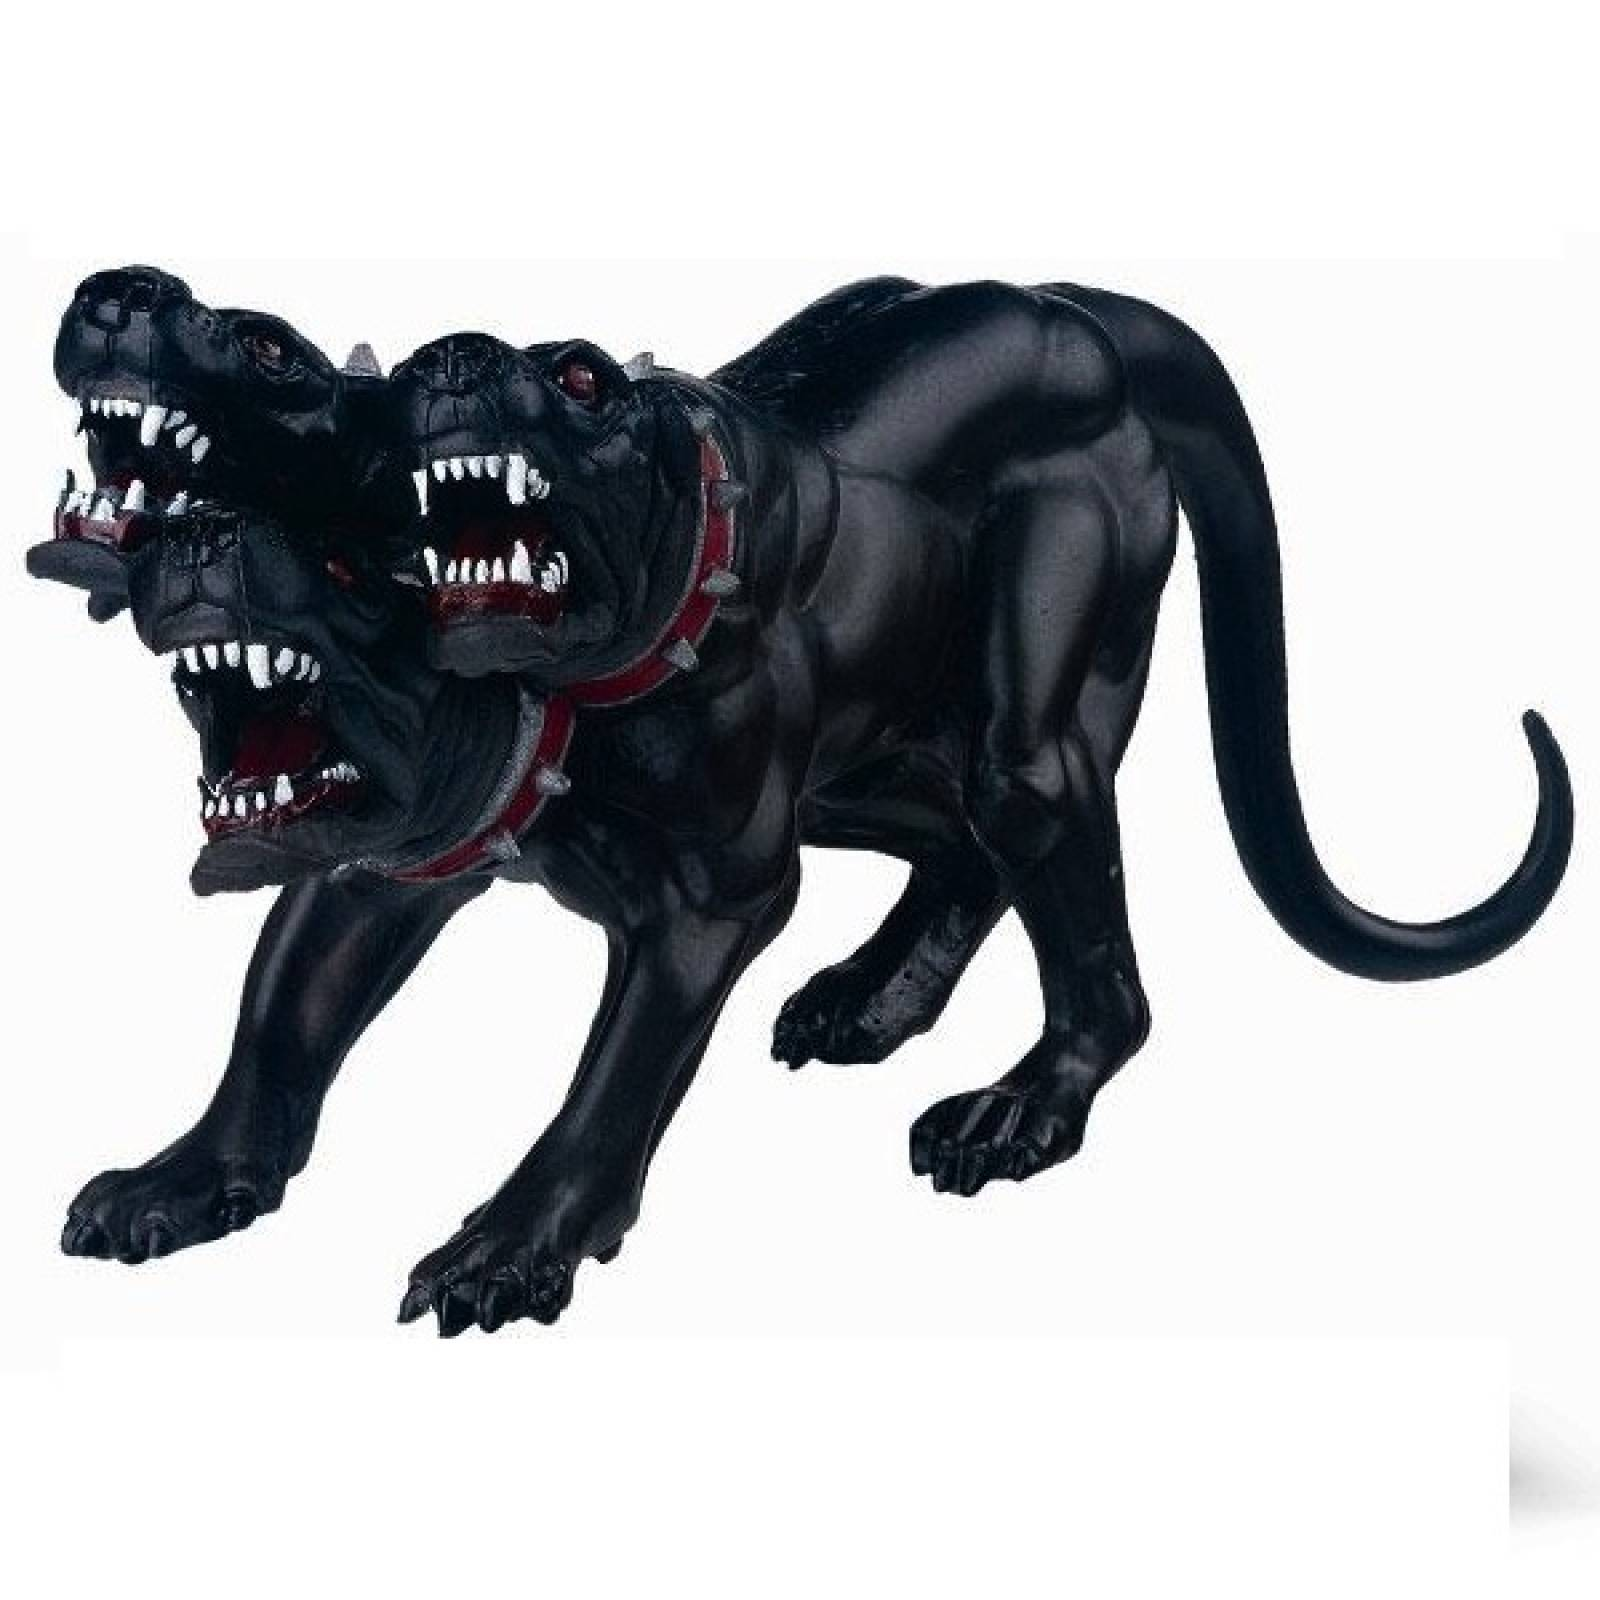 CERBERUS 3 Headed Dog Papo Fantasy Figure